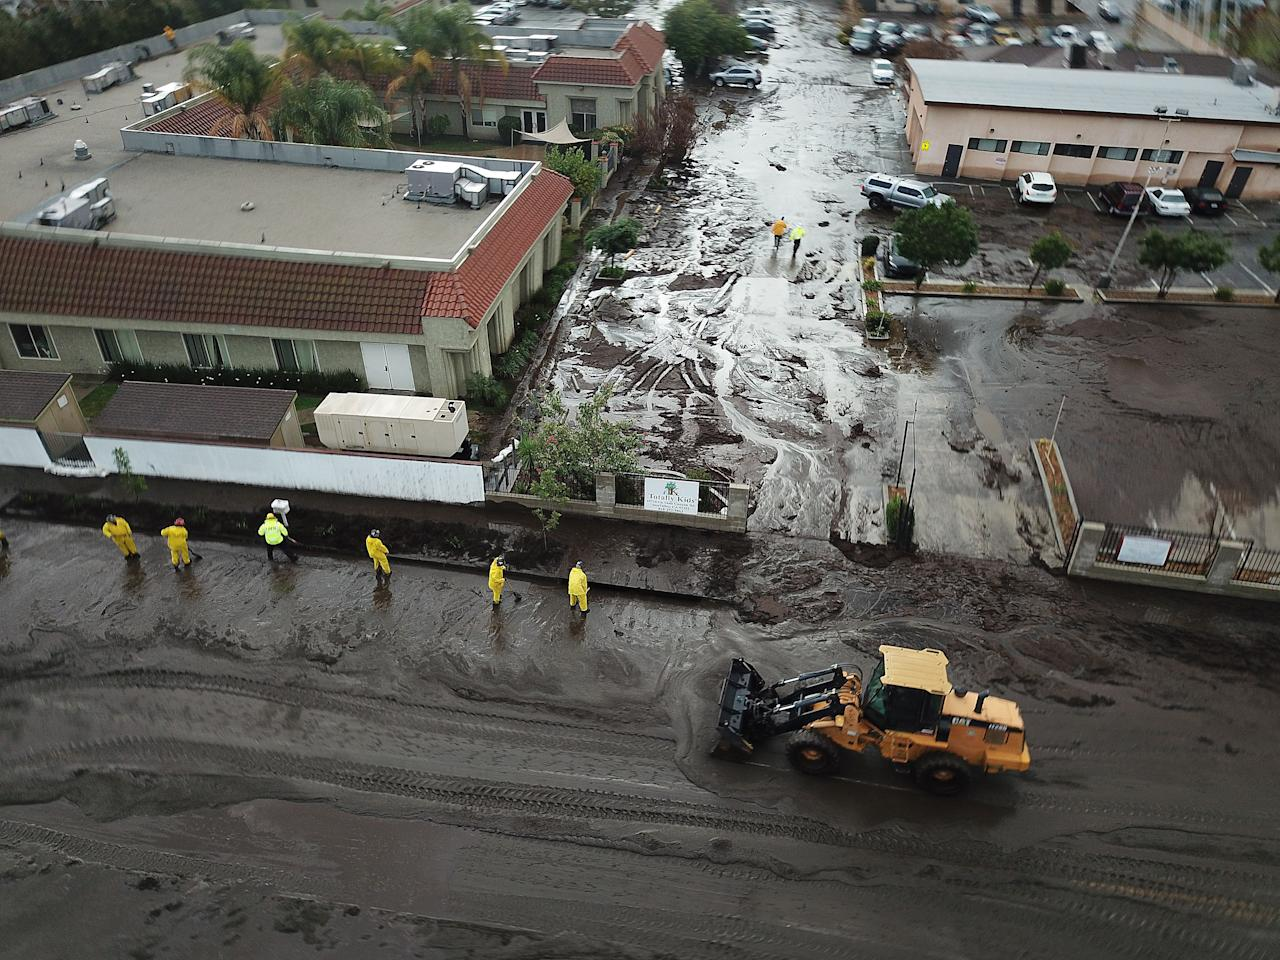 <p>Los Angeles Fire Department Firefighters work admist flood waters and mud after debris flow during heavy rains in Sun Valley, Calif., Jan. 9, 2018. (Photo: Andrew Gombert/EPA-EFE/REX/Shutterstock) </p>